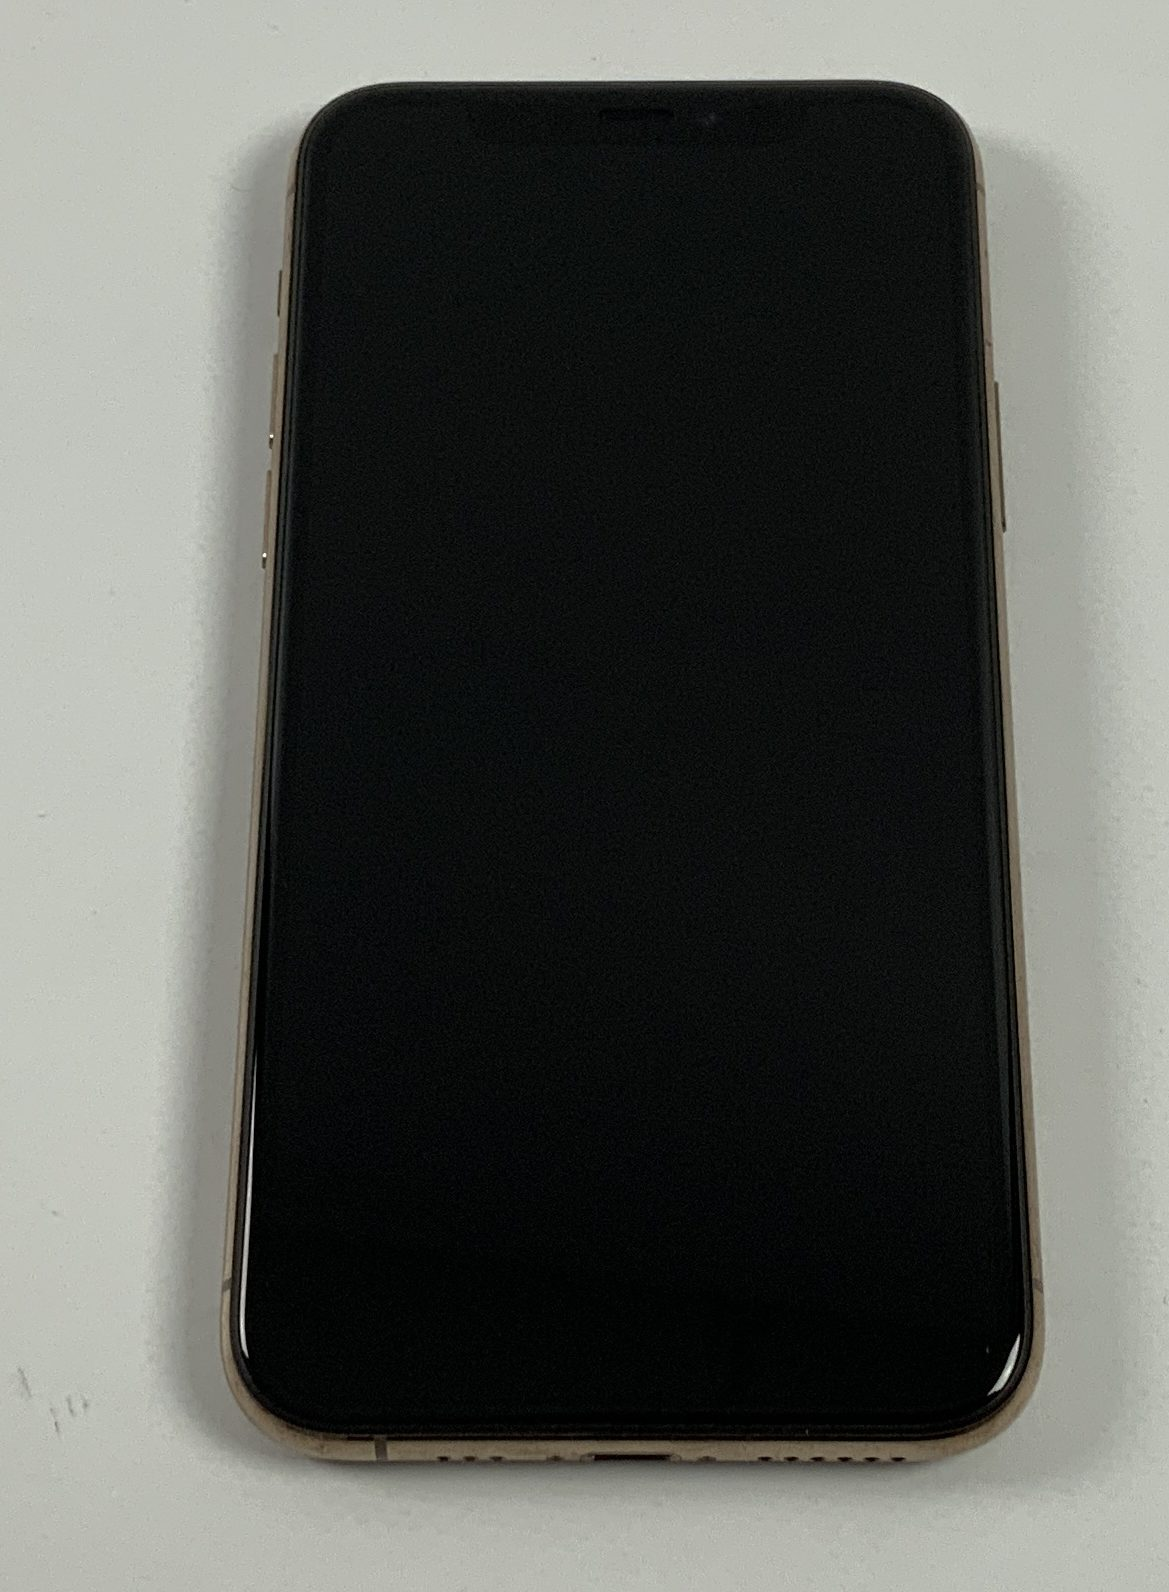 iPhone 11 Pro 64GB, 64GB, Gold, immagine 2